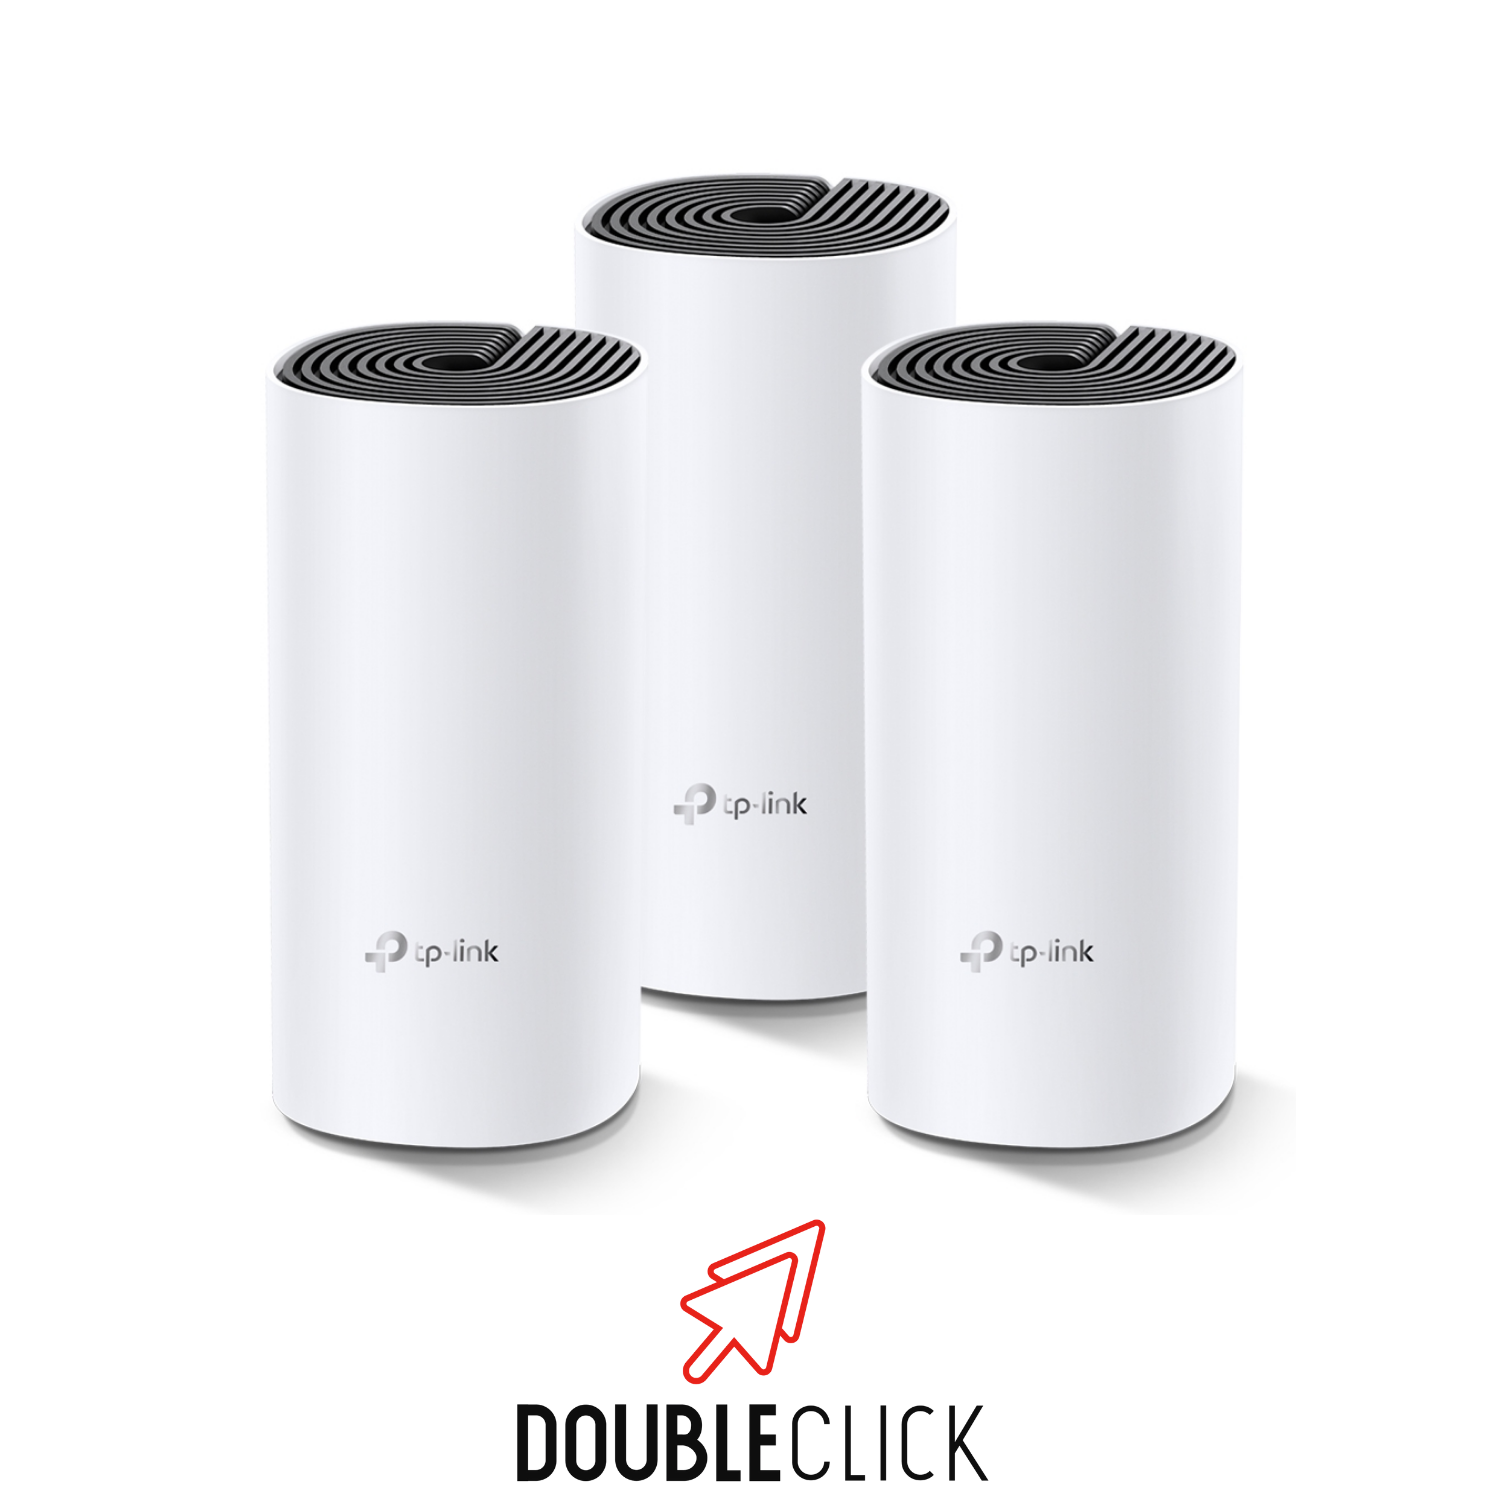 TP-LINK DECO AC1200 3 KIT WHOLE HOME MESH WIFI SYSTEM